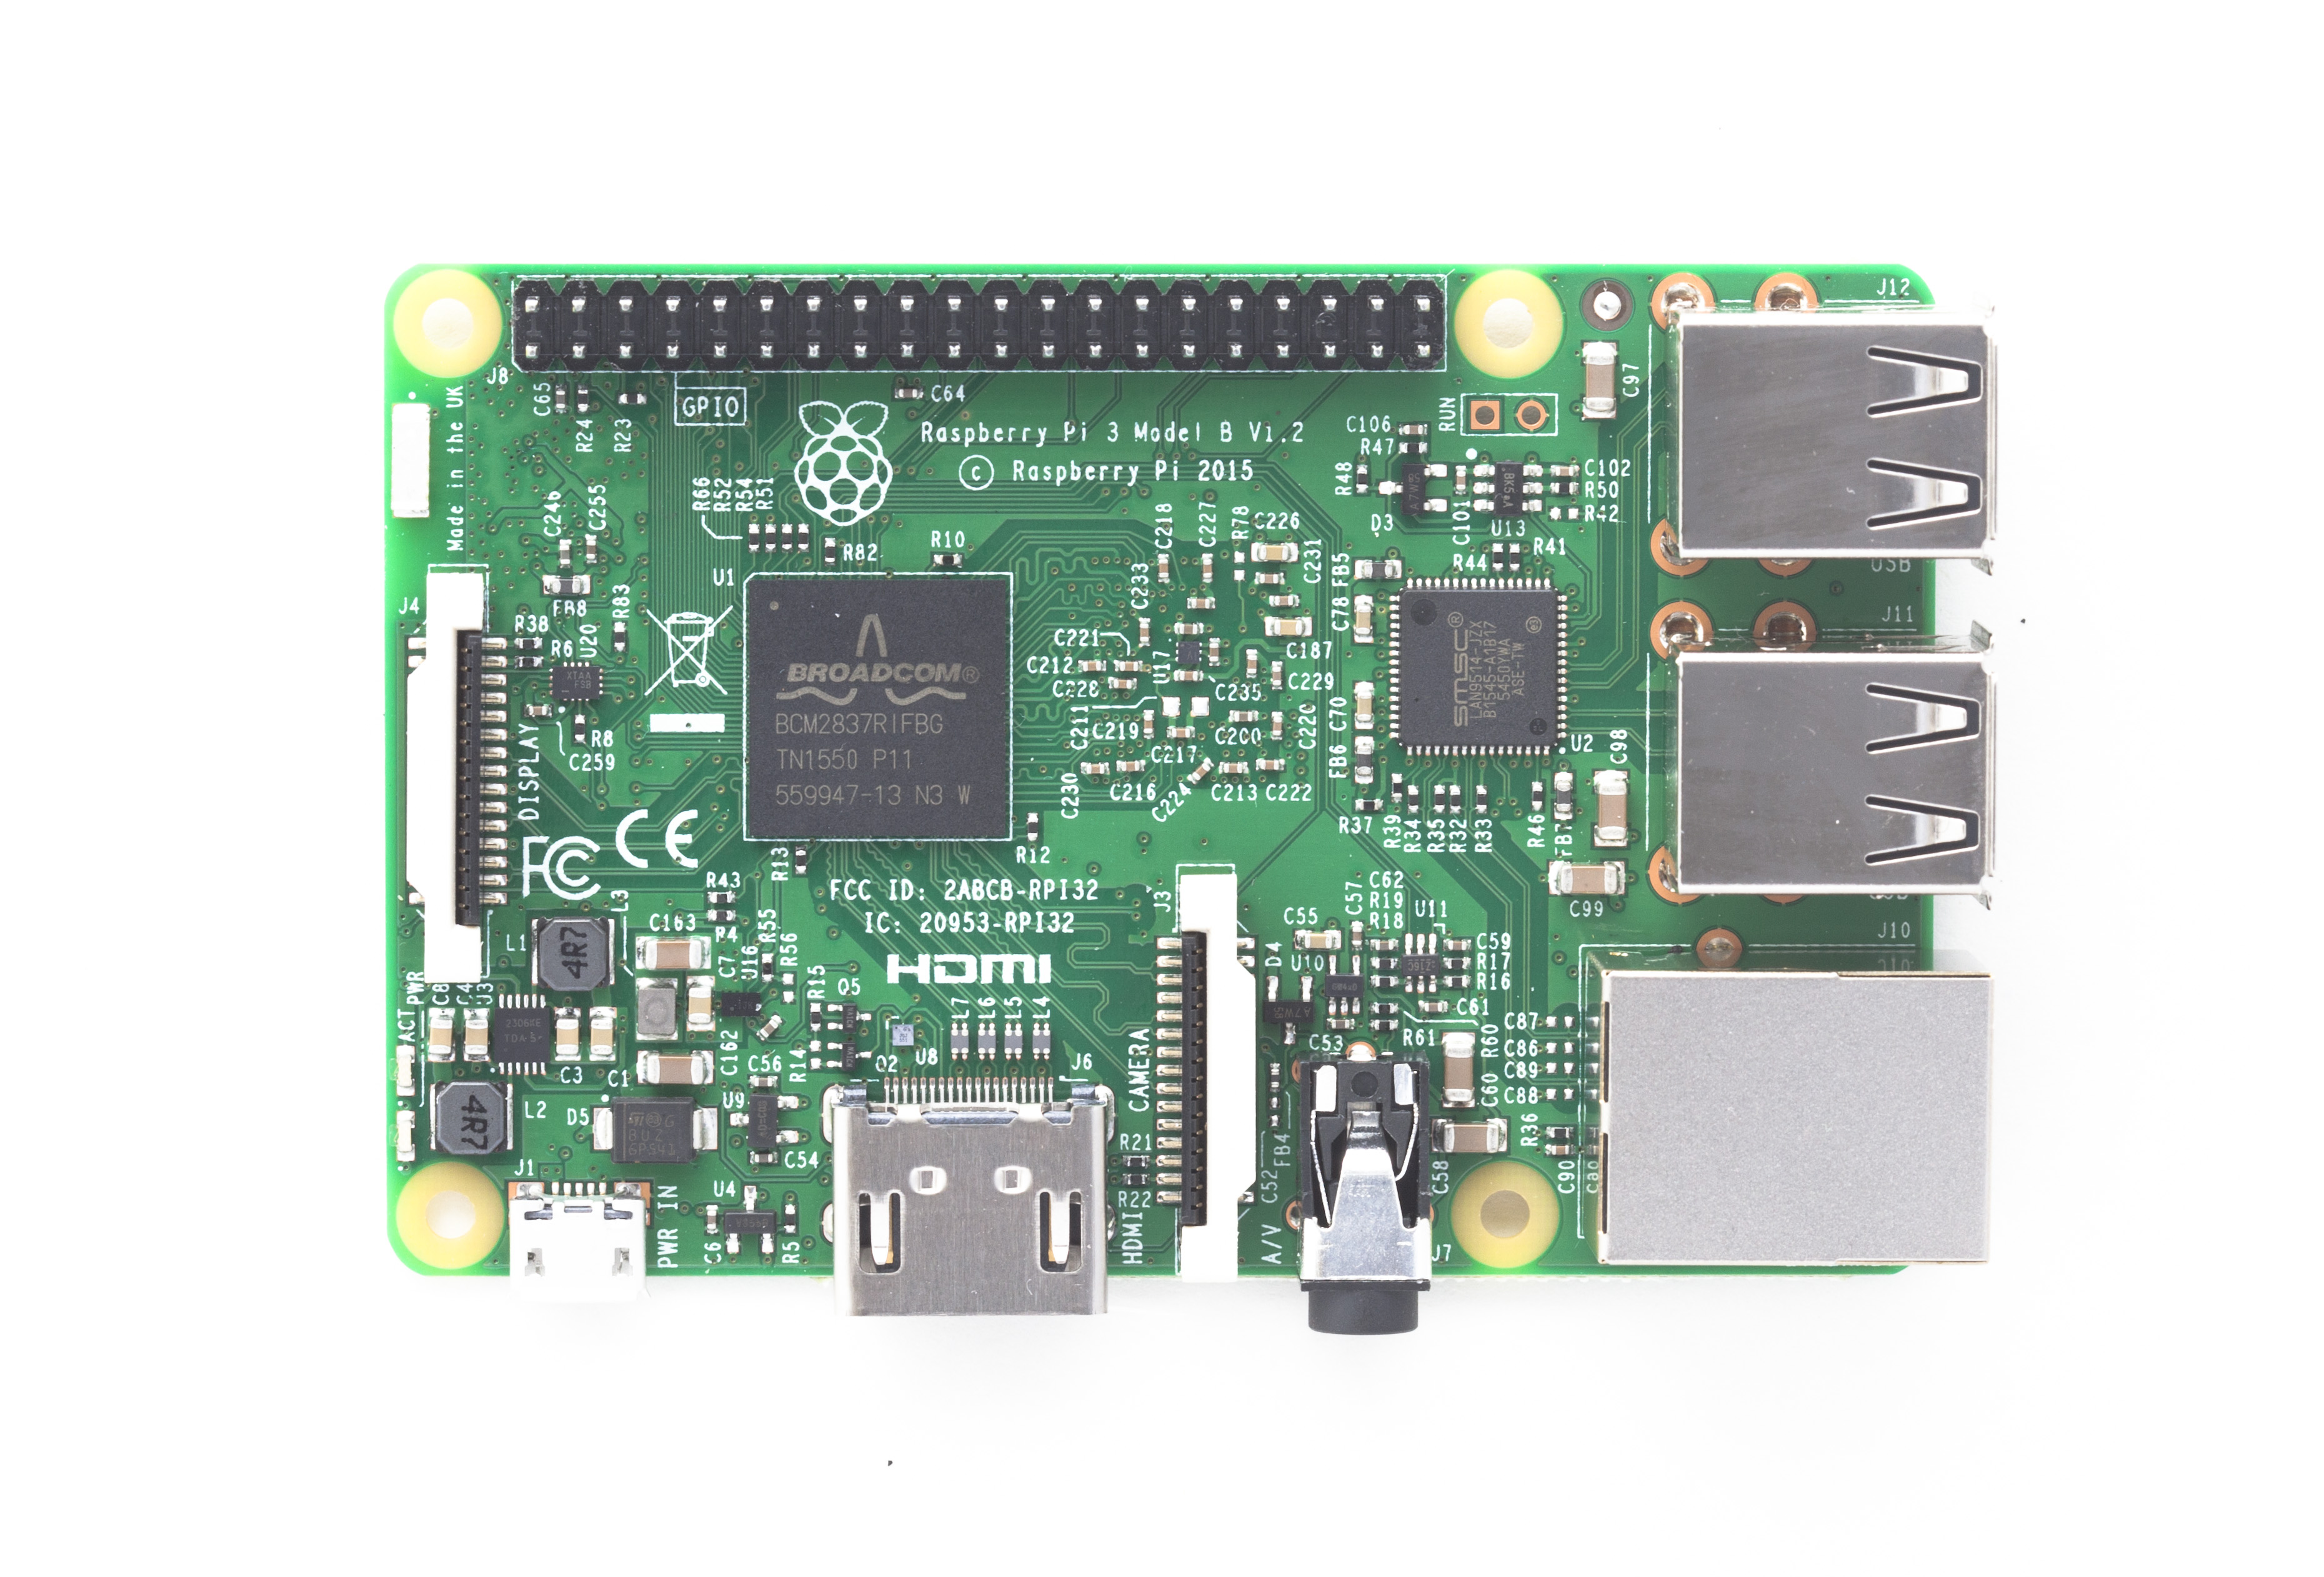 Raspberry Pi 3 launch - as told by the community! - The MagPi